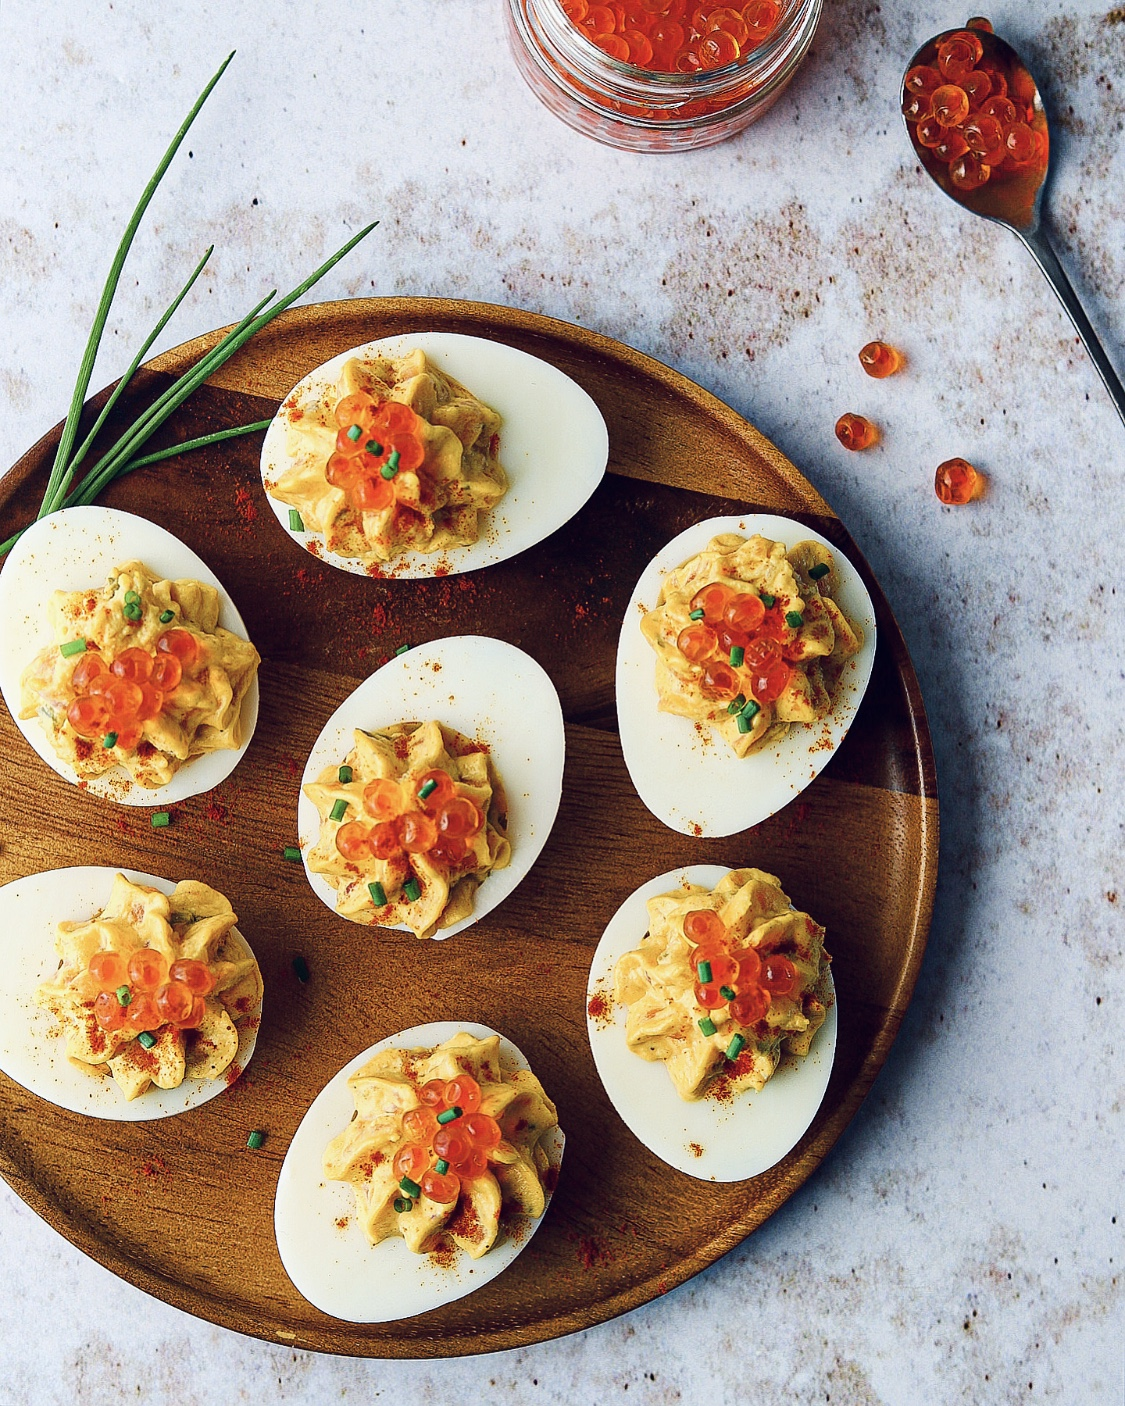 These Deviled Eggs w/ Smoked Salmon are perfect for Easter or as appetizer!